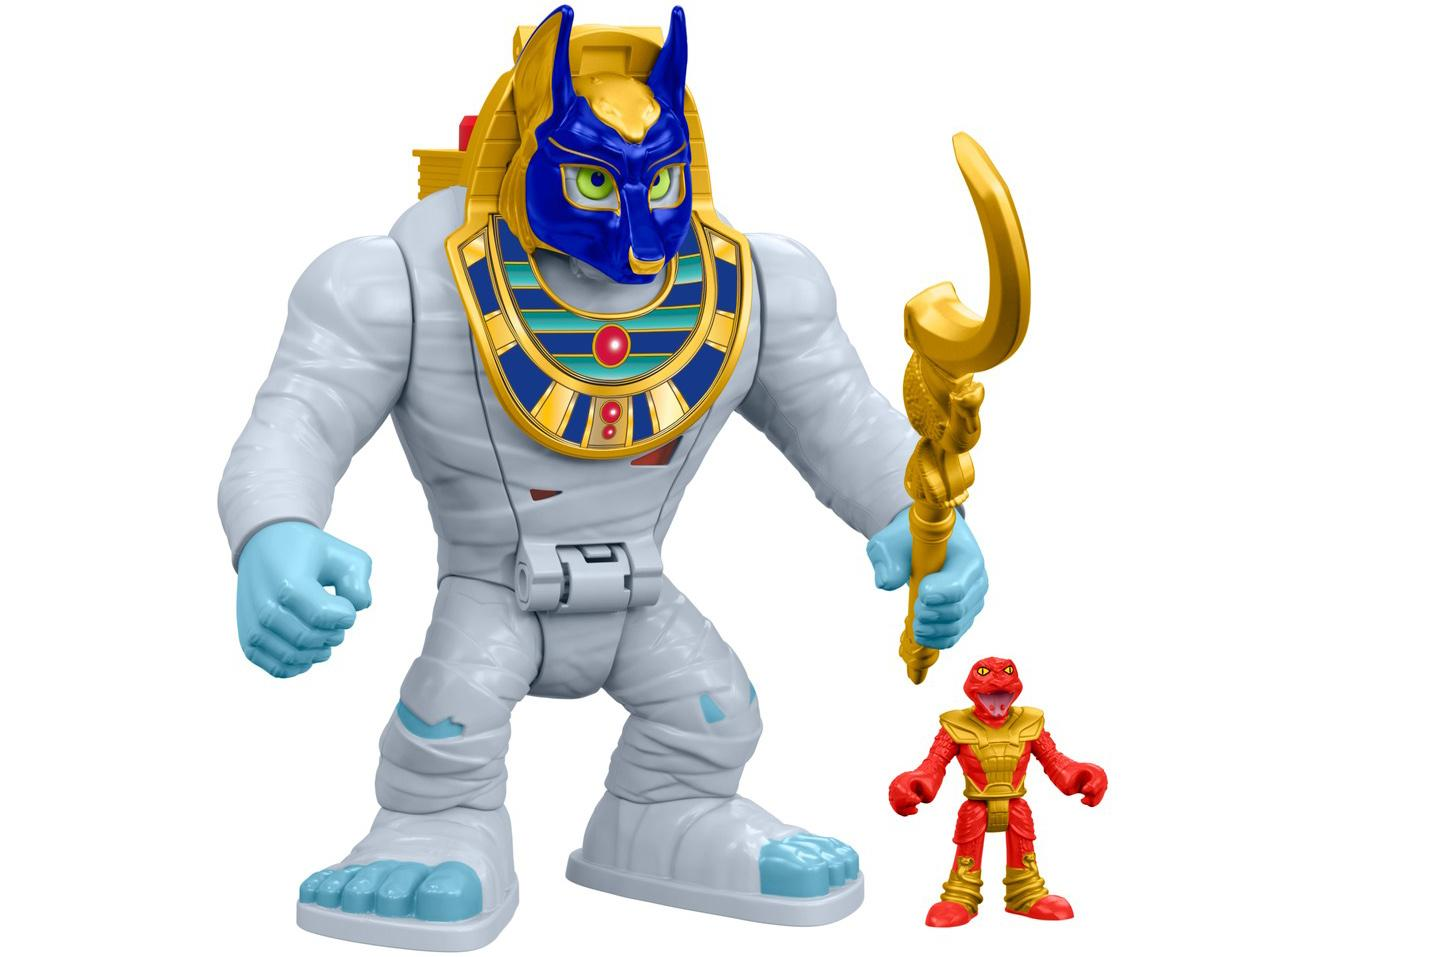 Amazon.com: Fisher-Price Imaginext Mummy King Figure: Toys & Games